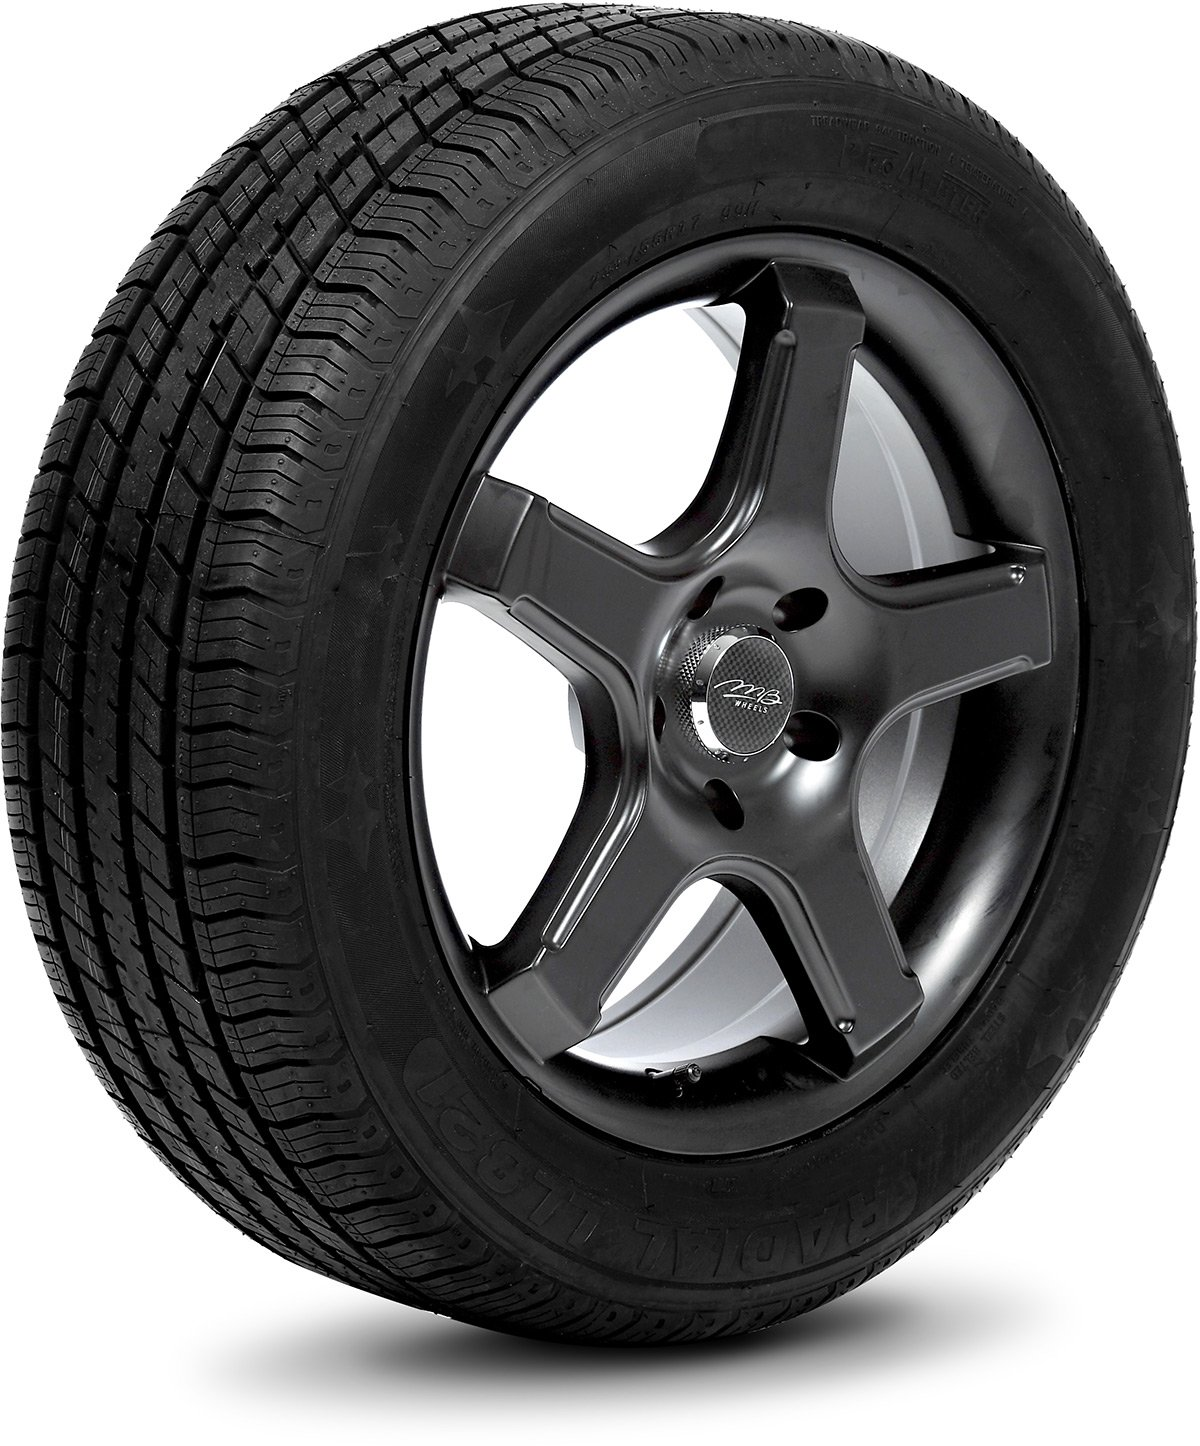 Prometer LL821 All-Season Tire - 205/55R16 91H product image